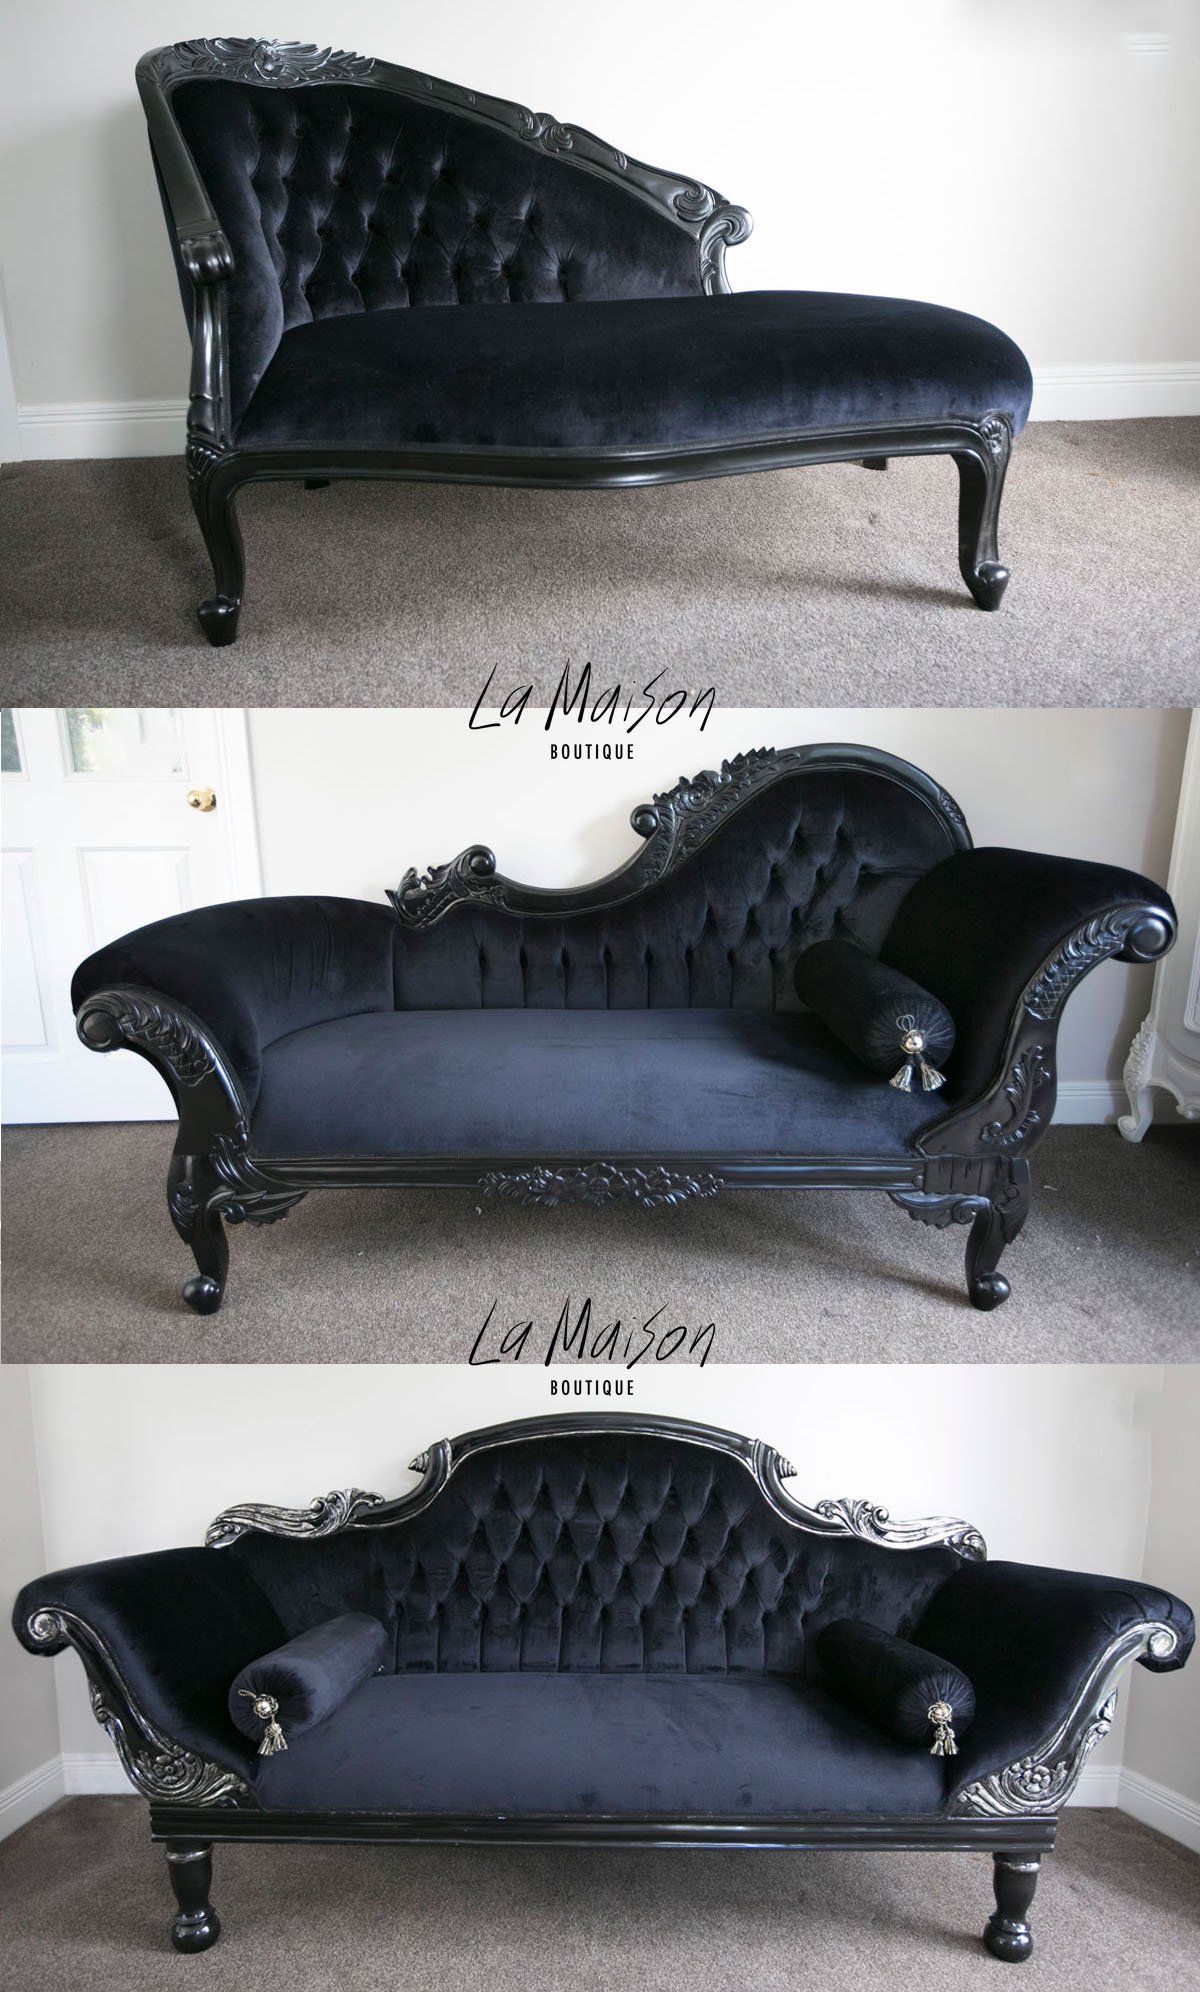 How to style a chaise longue la maison boutique - Lampadaire la chaise longue ...